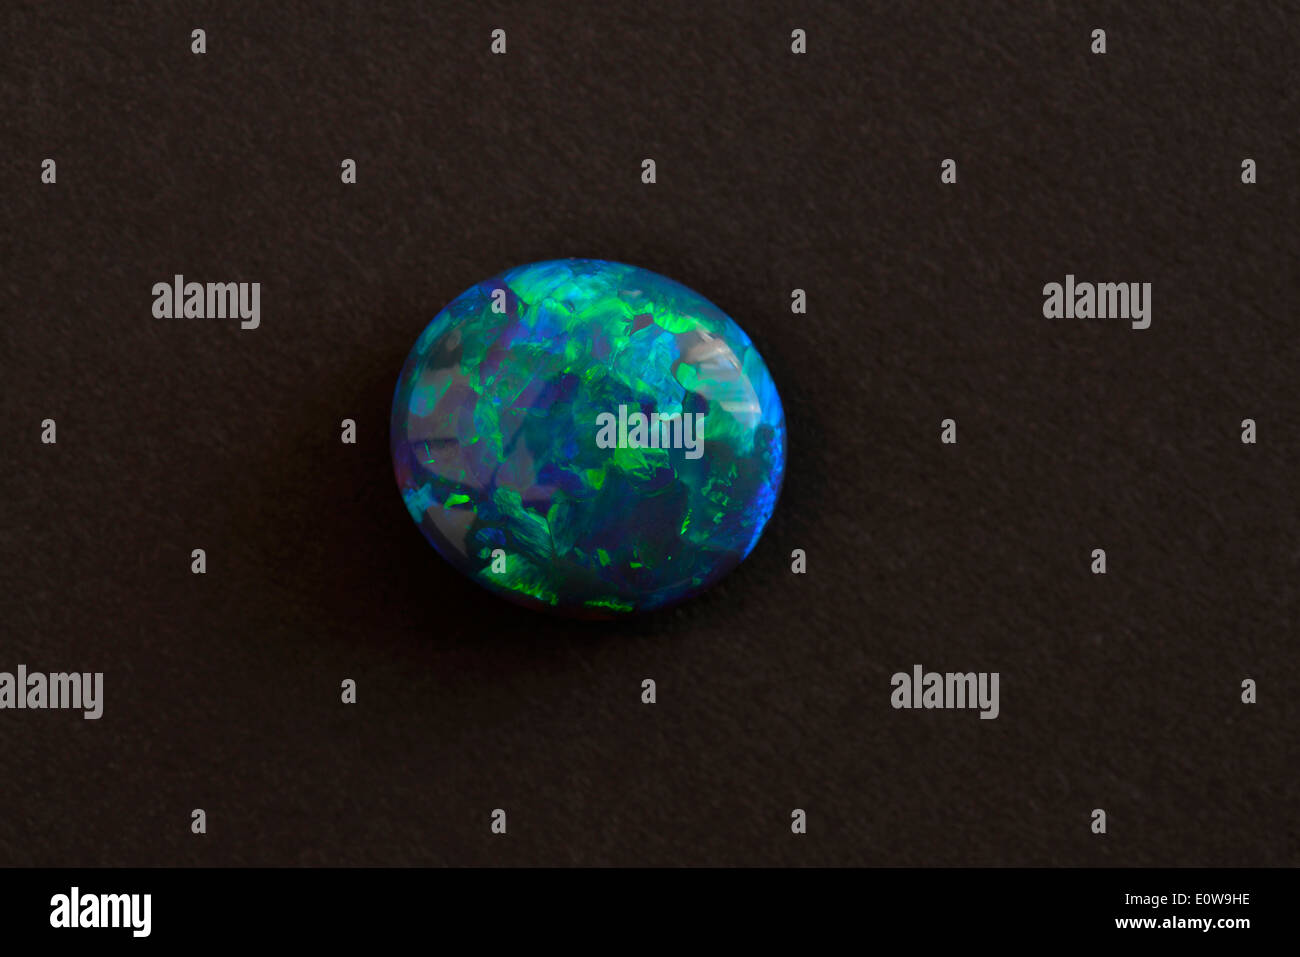 Polished Black Opal, studio picture against a black background - Stock Image